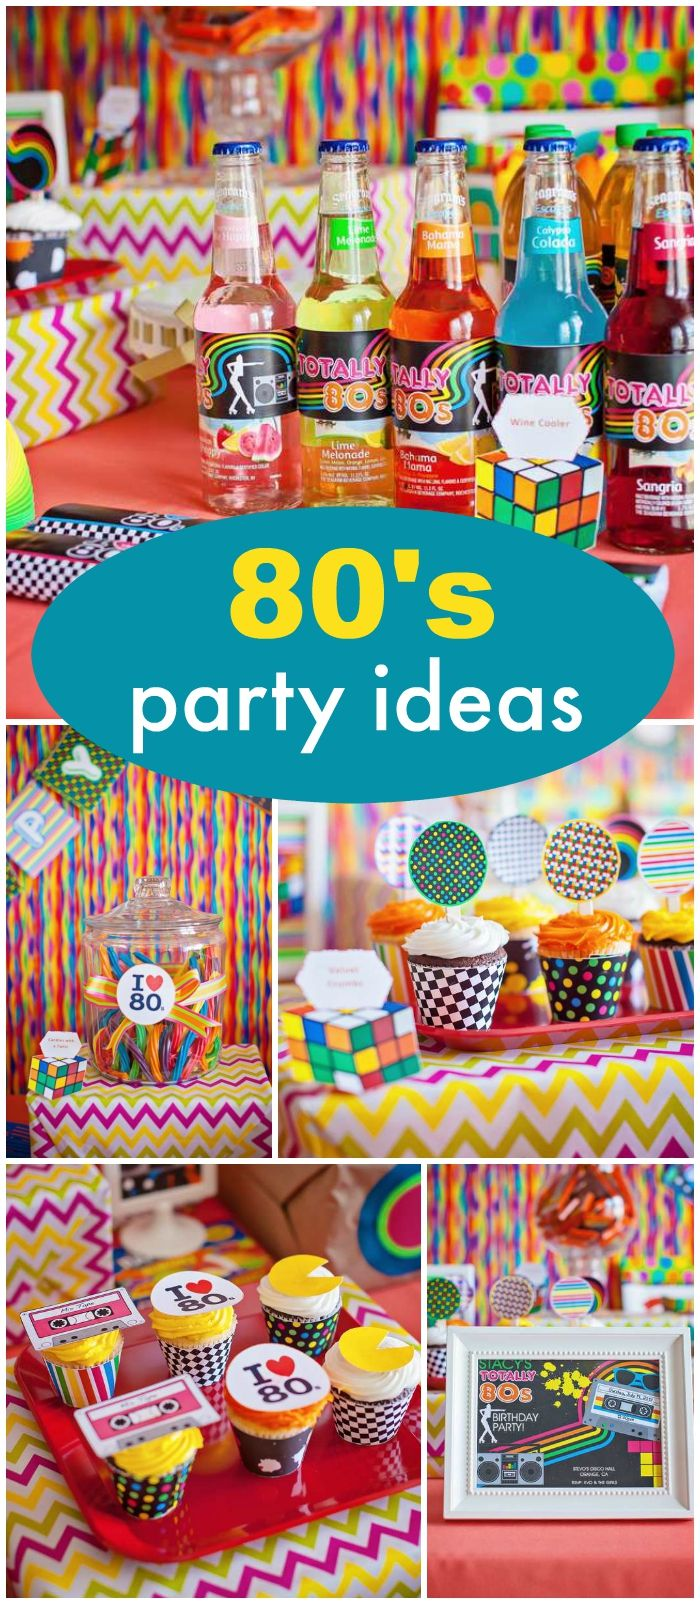 AD-Unique-Party-Themes-17